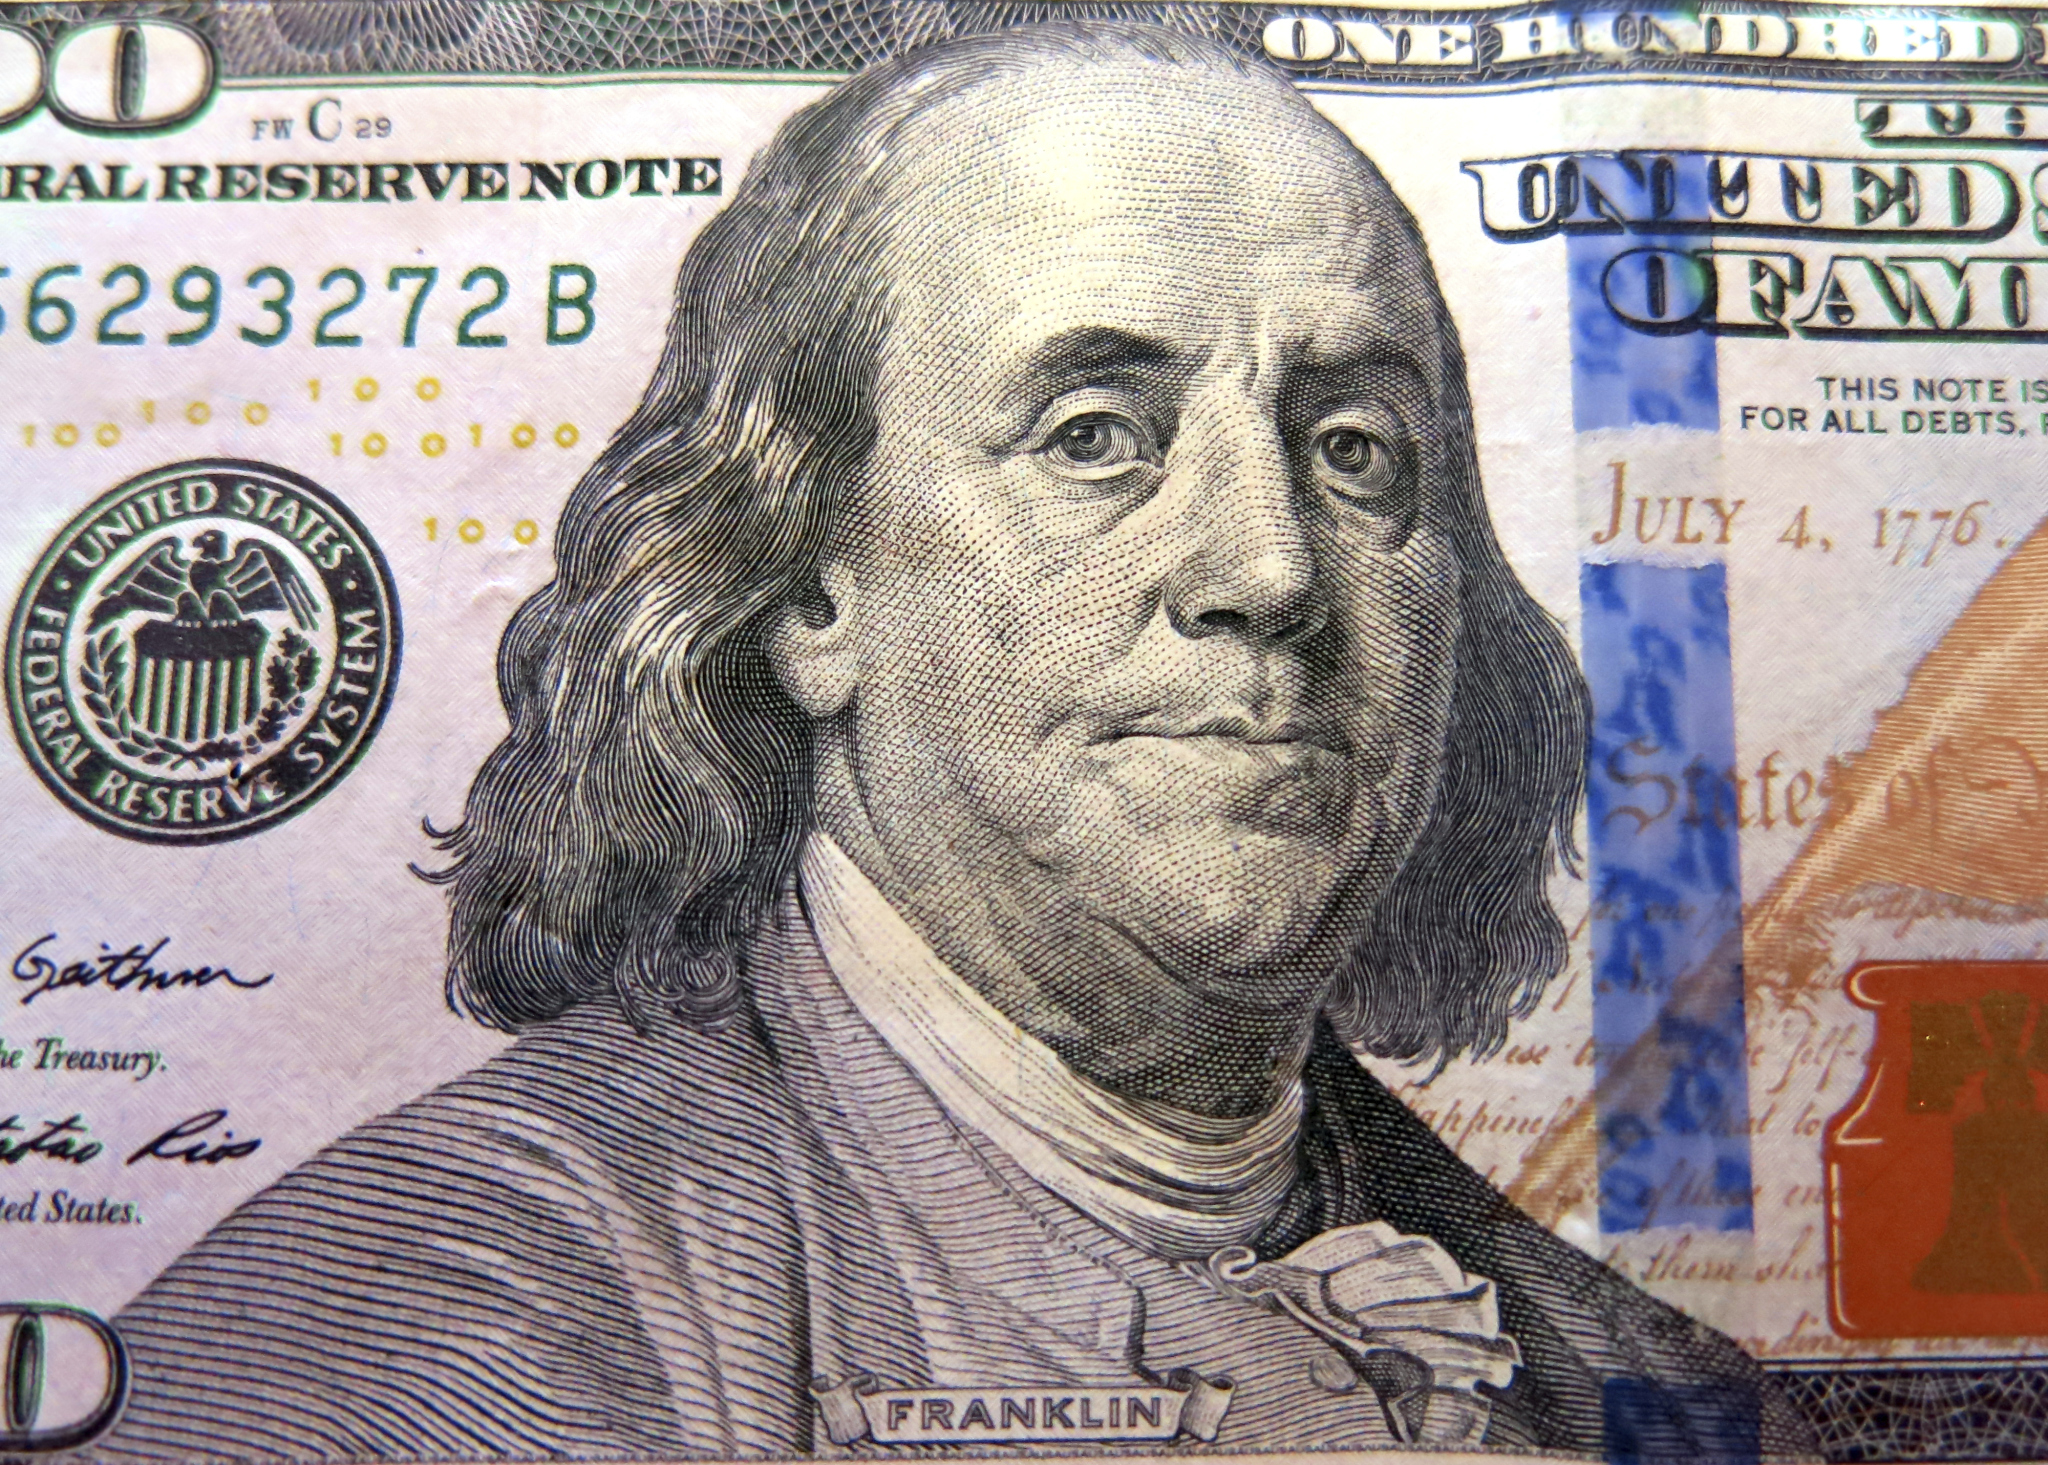 Benjamin Franklin on a US bank note